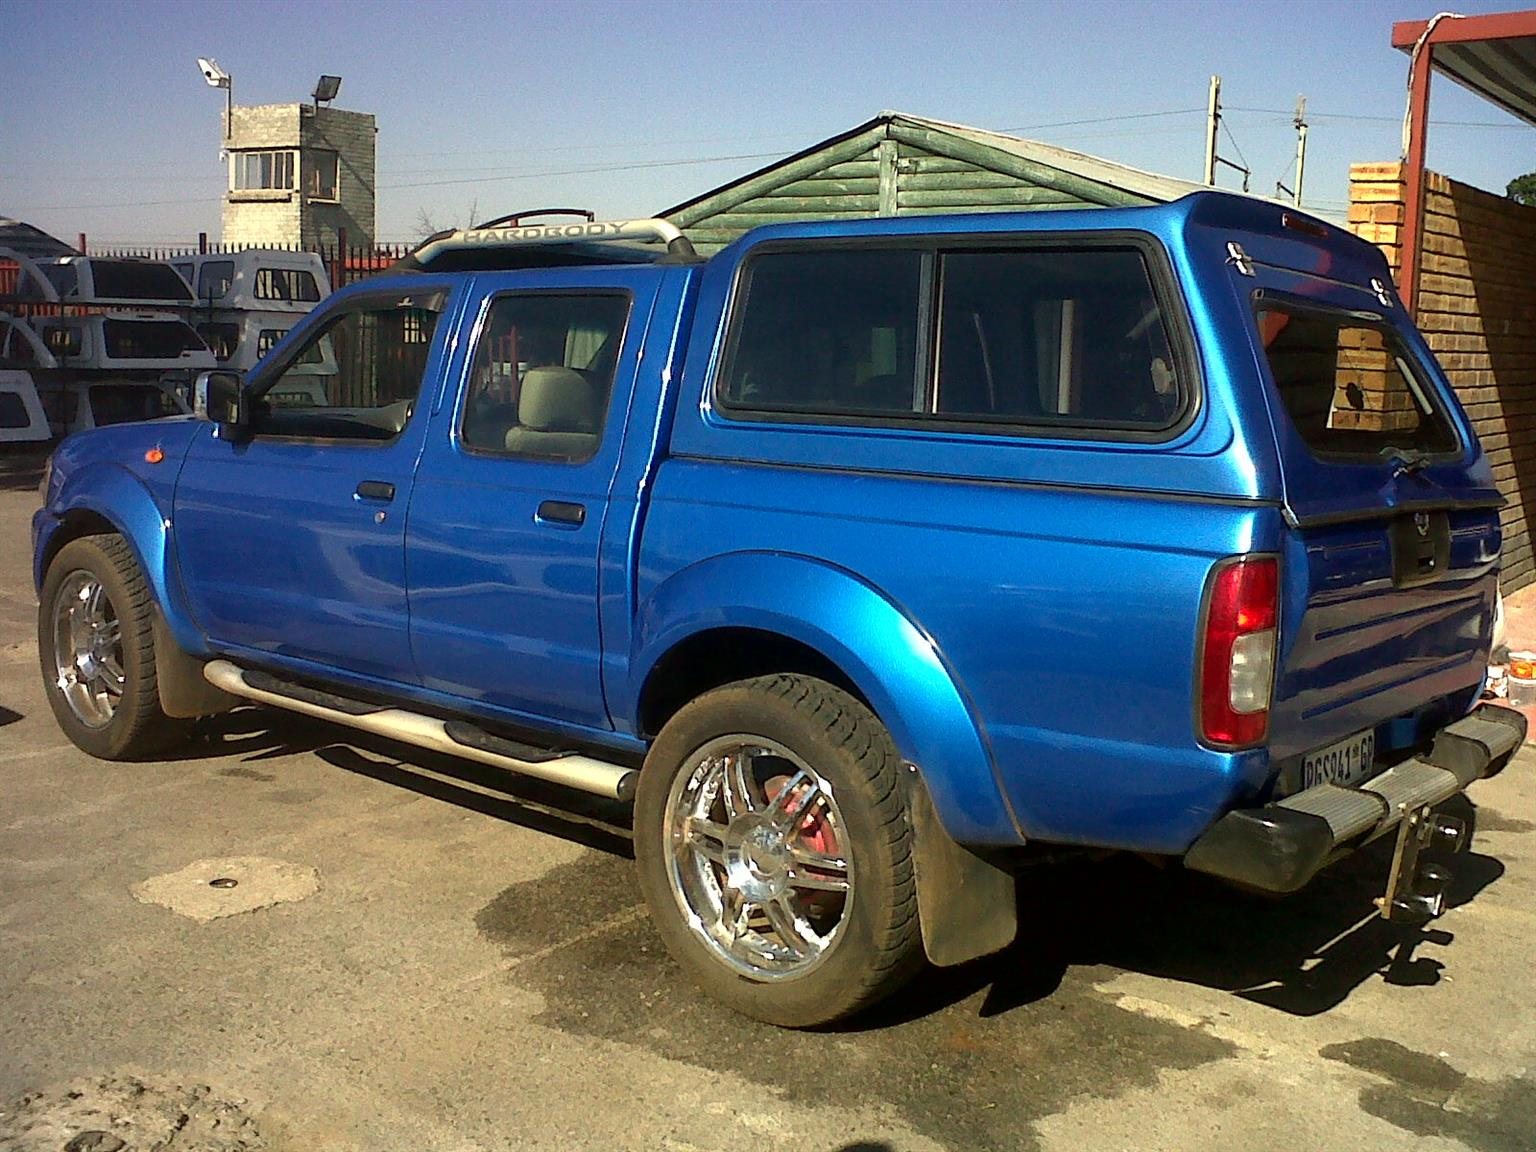 GC BRAND NEW NISSAN HARDBODY NP300 DC BAKKIE CANOPY FOR SALE!!!